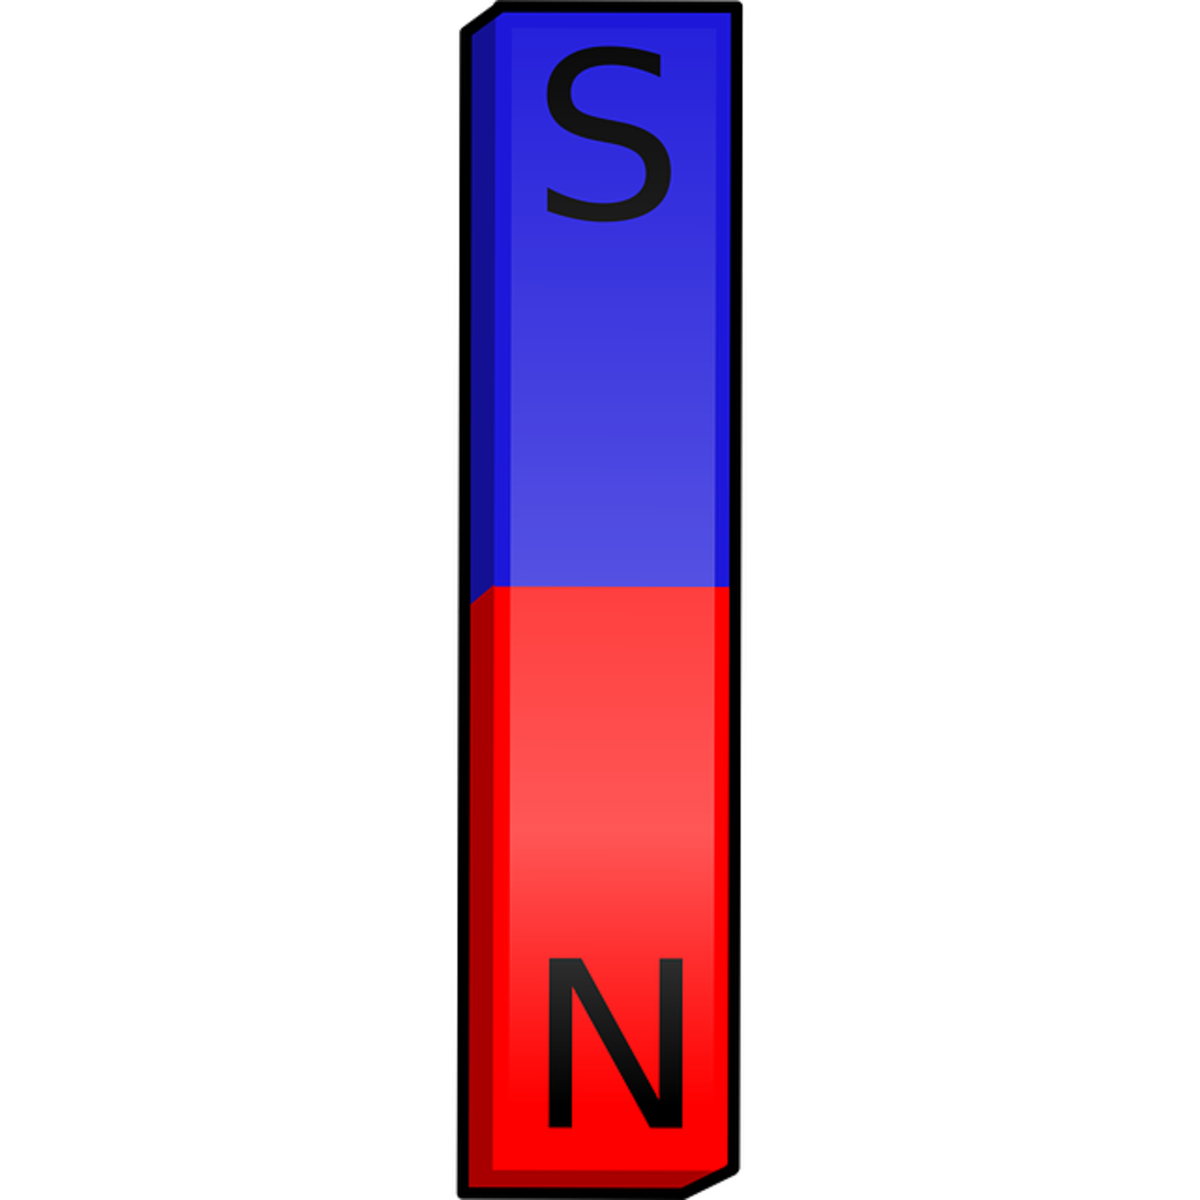 Magnets have north and south poles